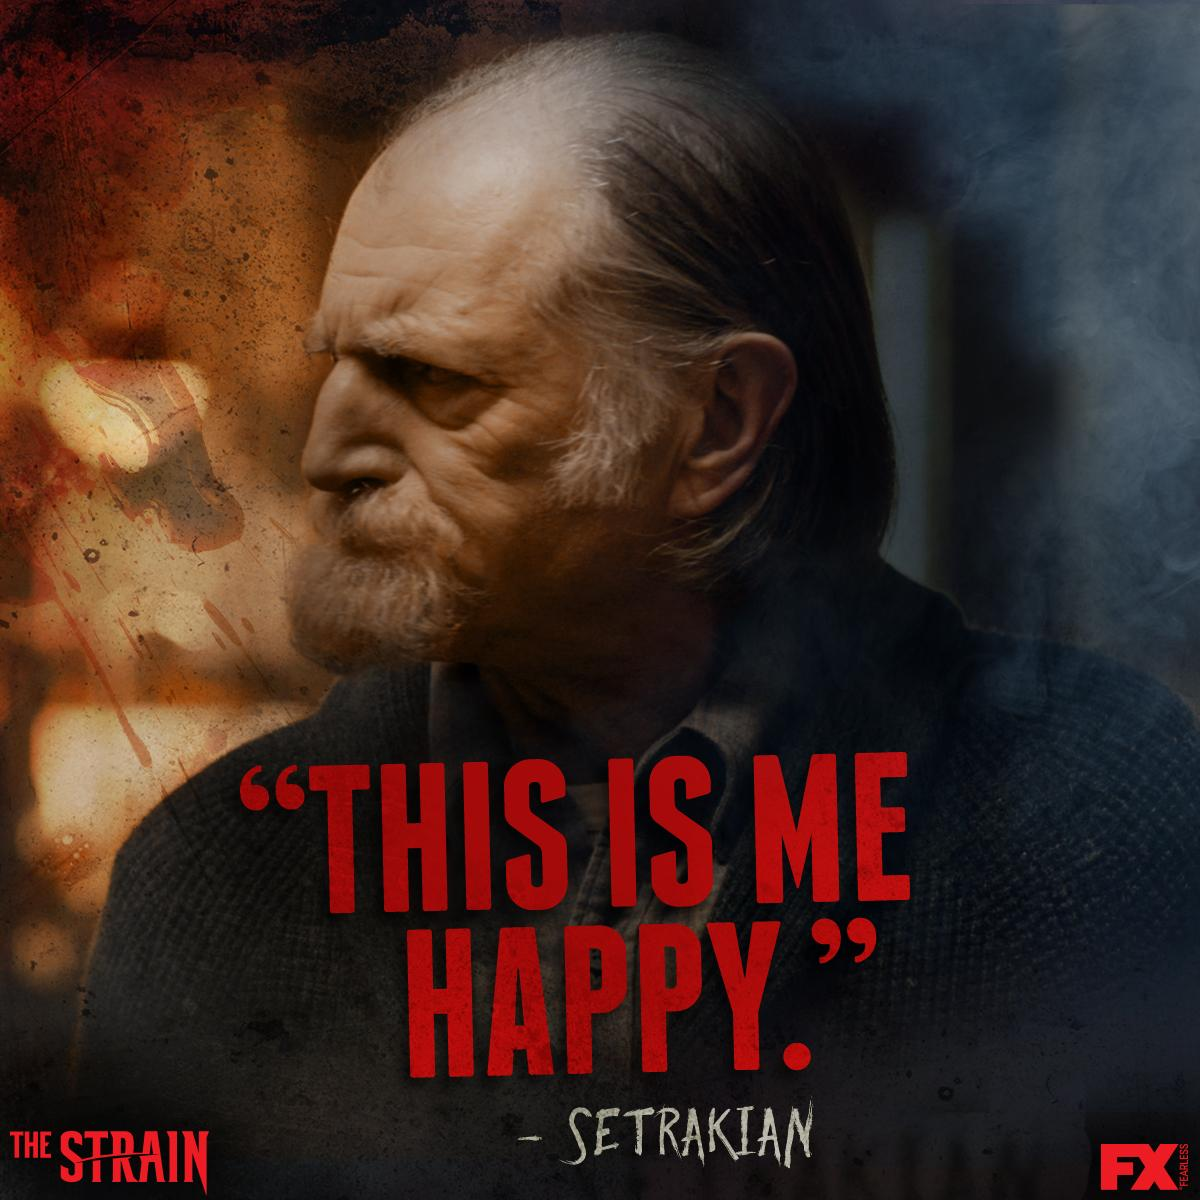 Everyone has their own definition of happiness. #InternationalDayOfHappiness #TheStrain